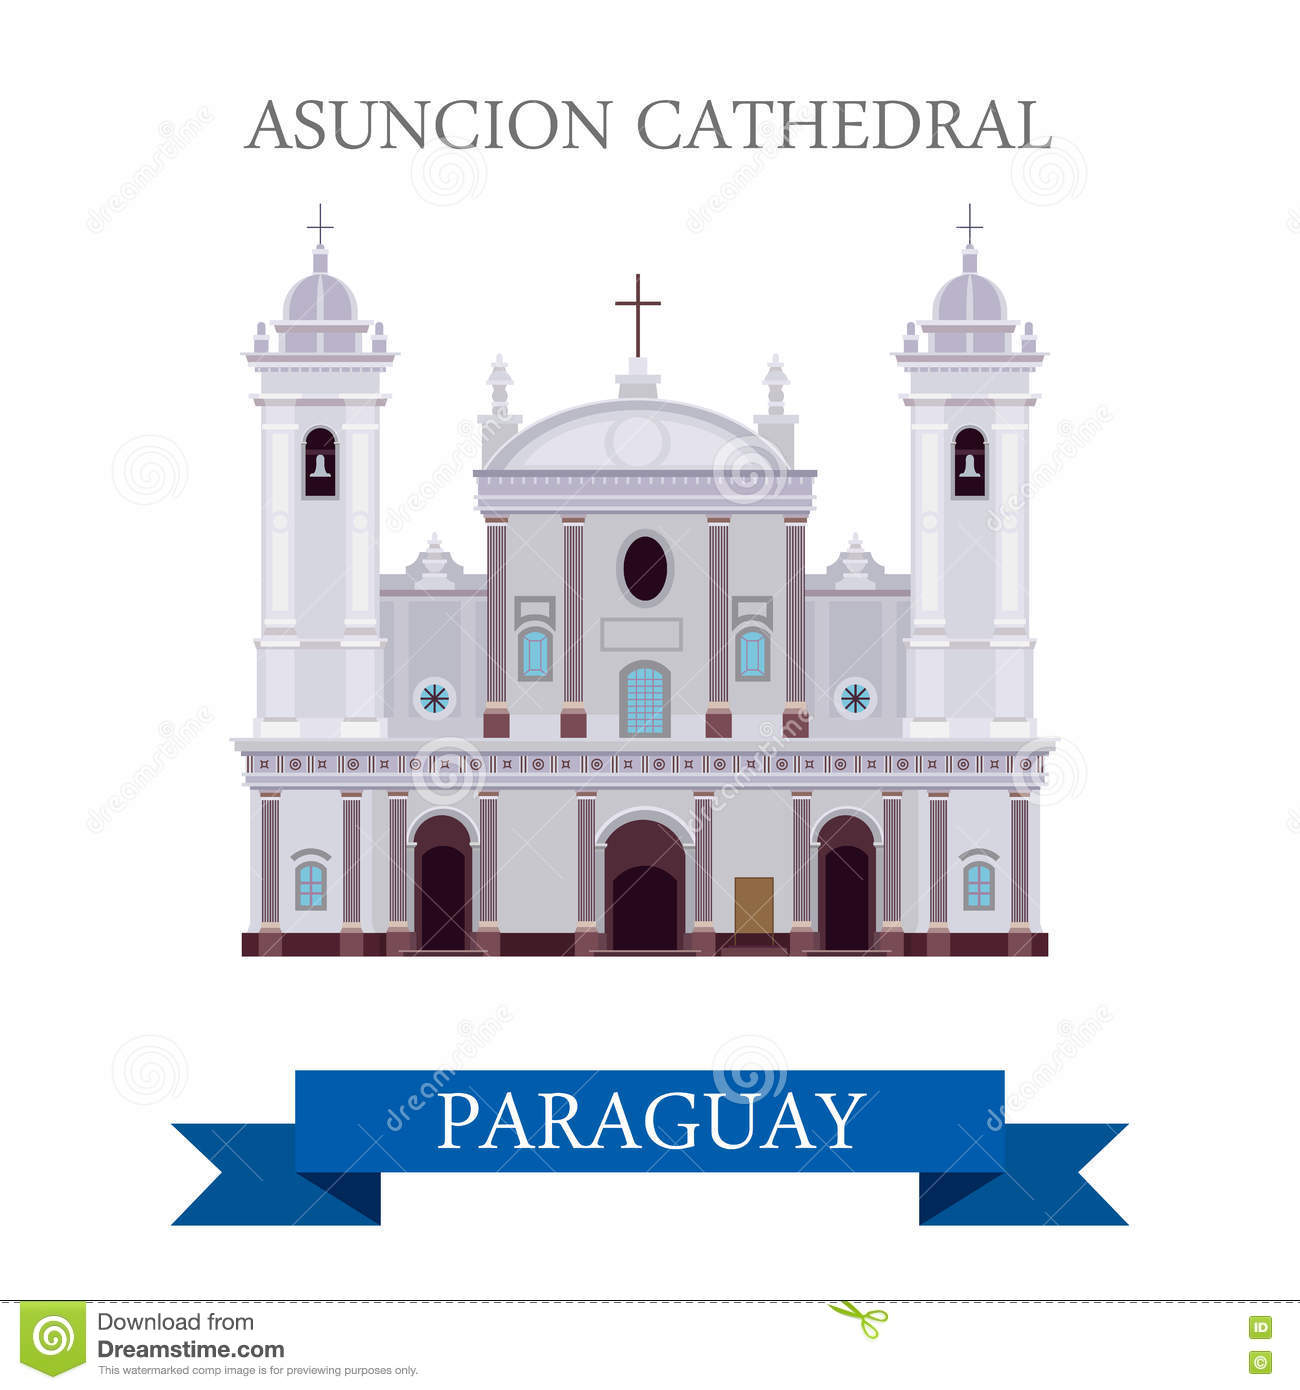 Paraguay, the capital. Asuncion: sights and photos 73